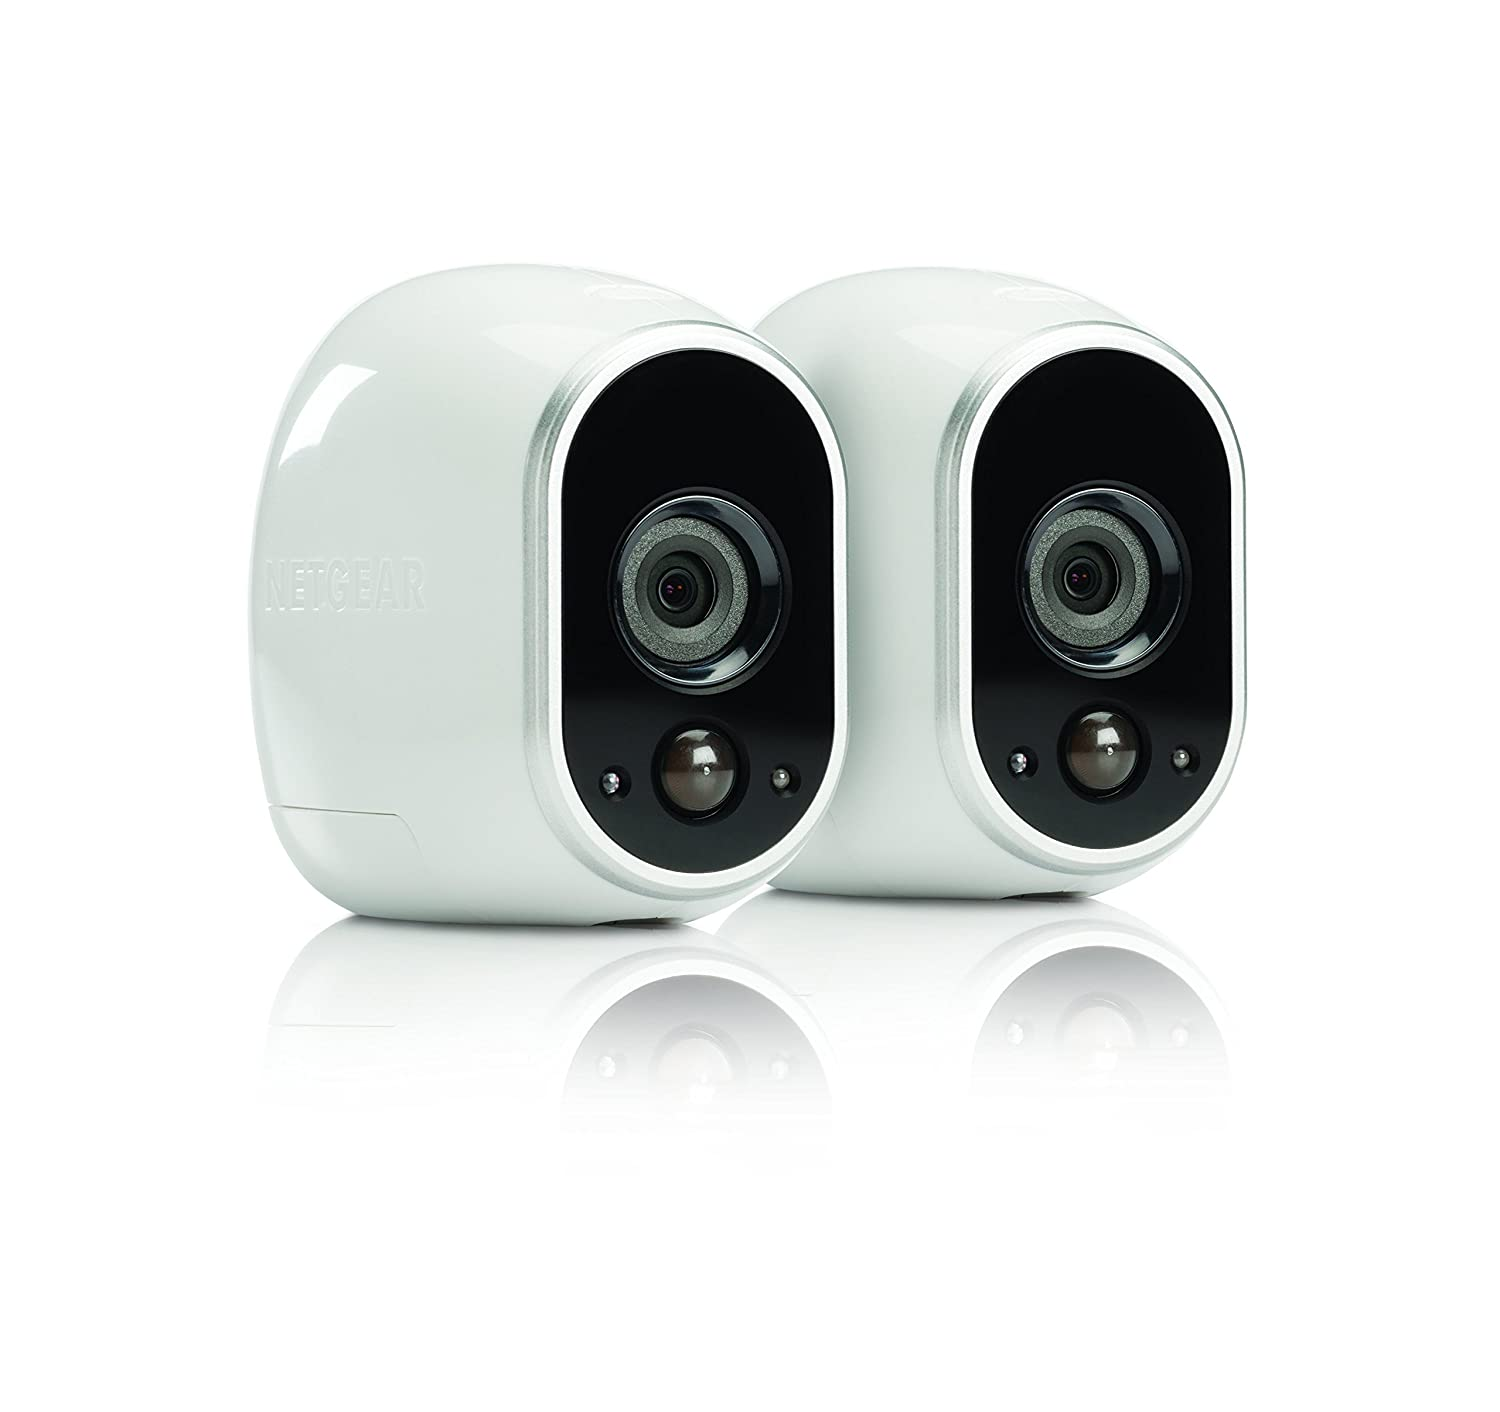 amazoncom arlo security system by netgear 2 wirefree hd cameras night vision vms3230 old version home improvement